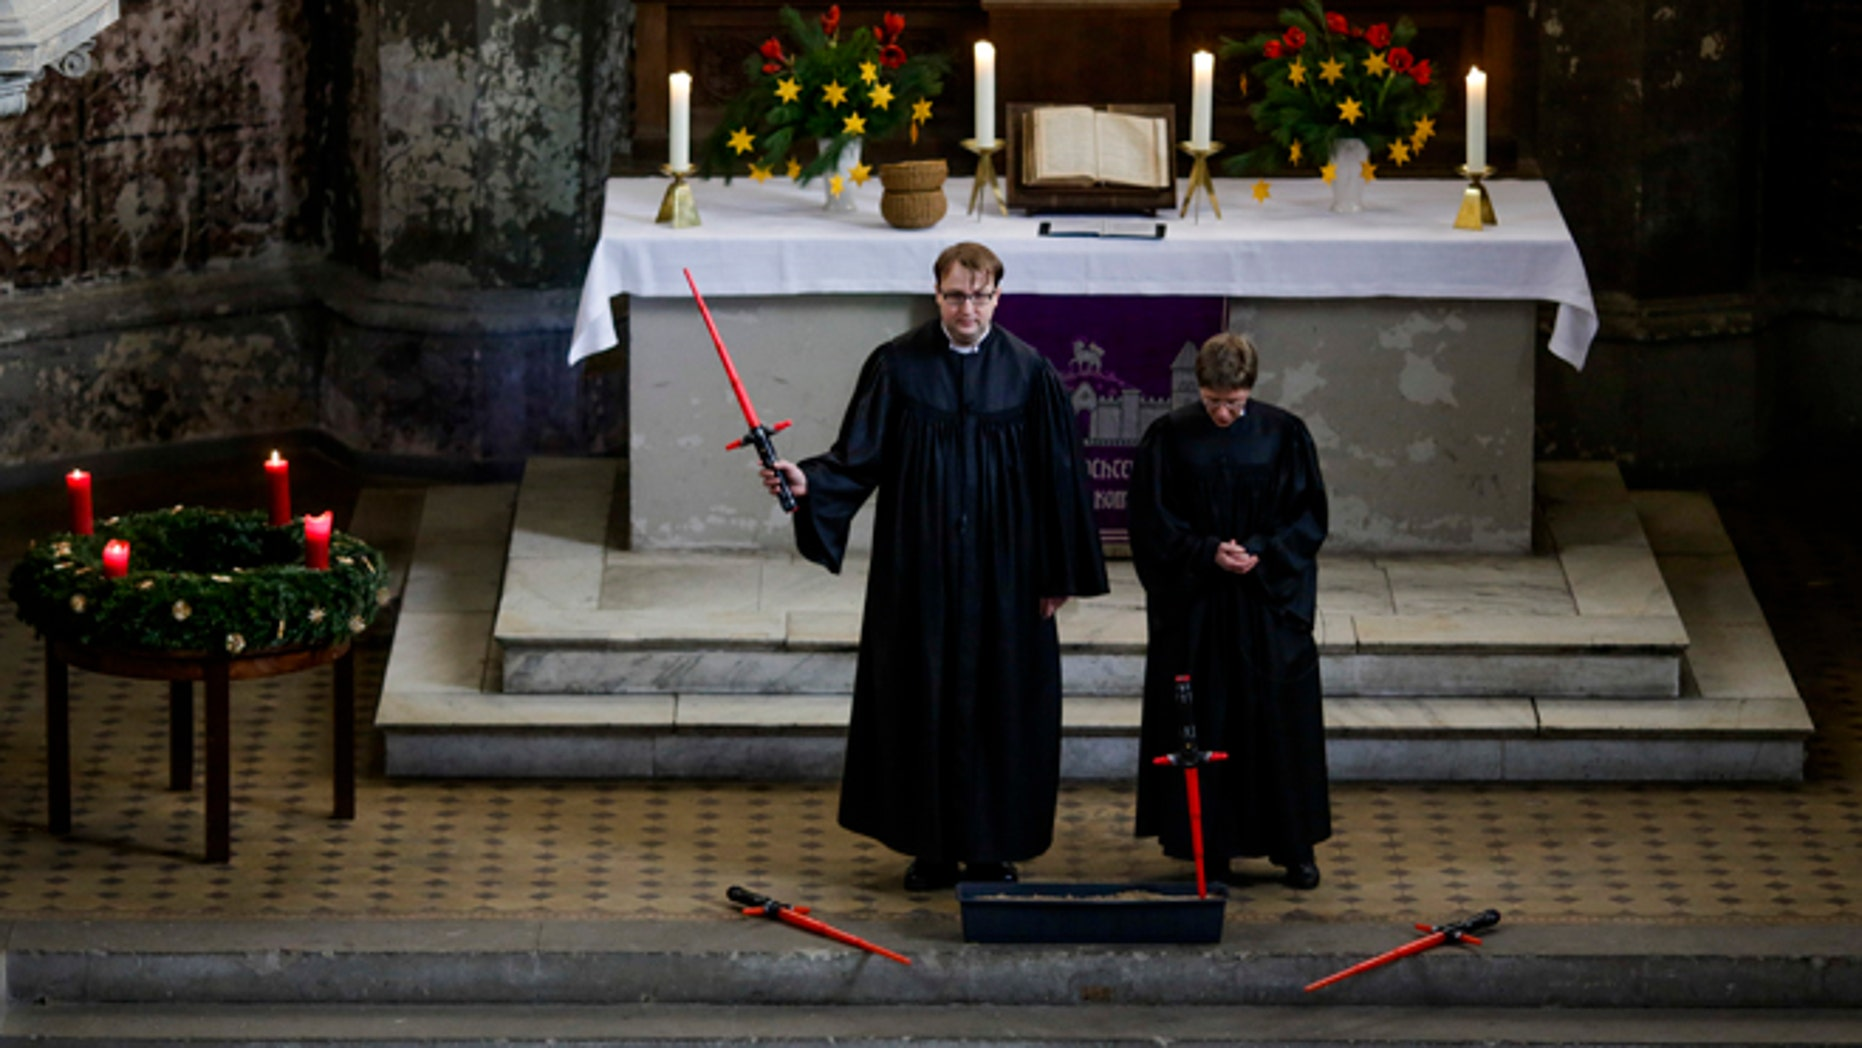 December 20, 2015. Vicars Lucas Ludewig, left, and Ulrike Garve, right, celebrate a Star Wars themed church service, at the  Zion Church  in Berlin, Germany.